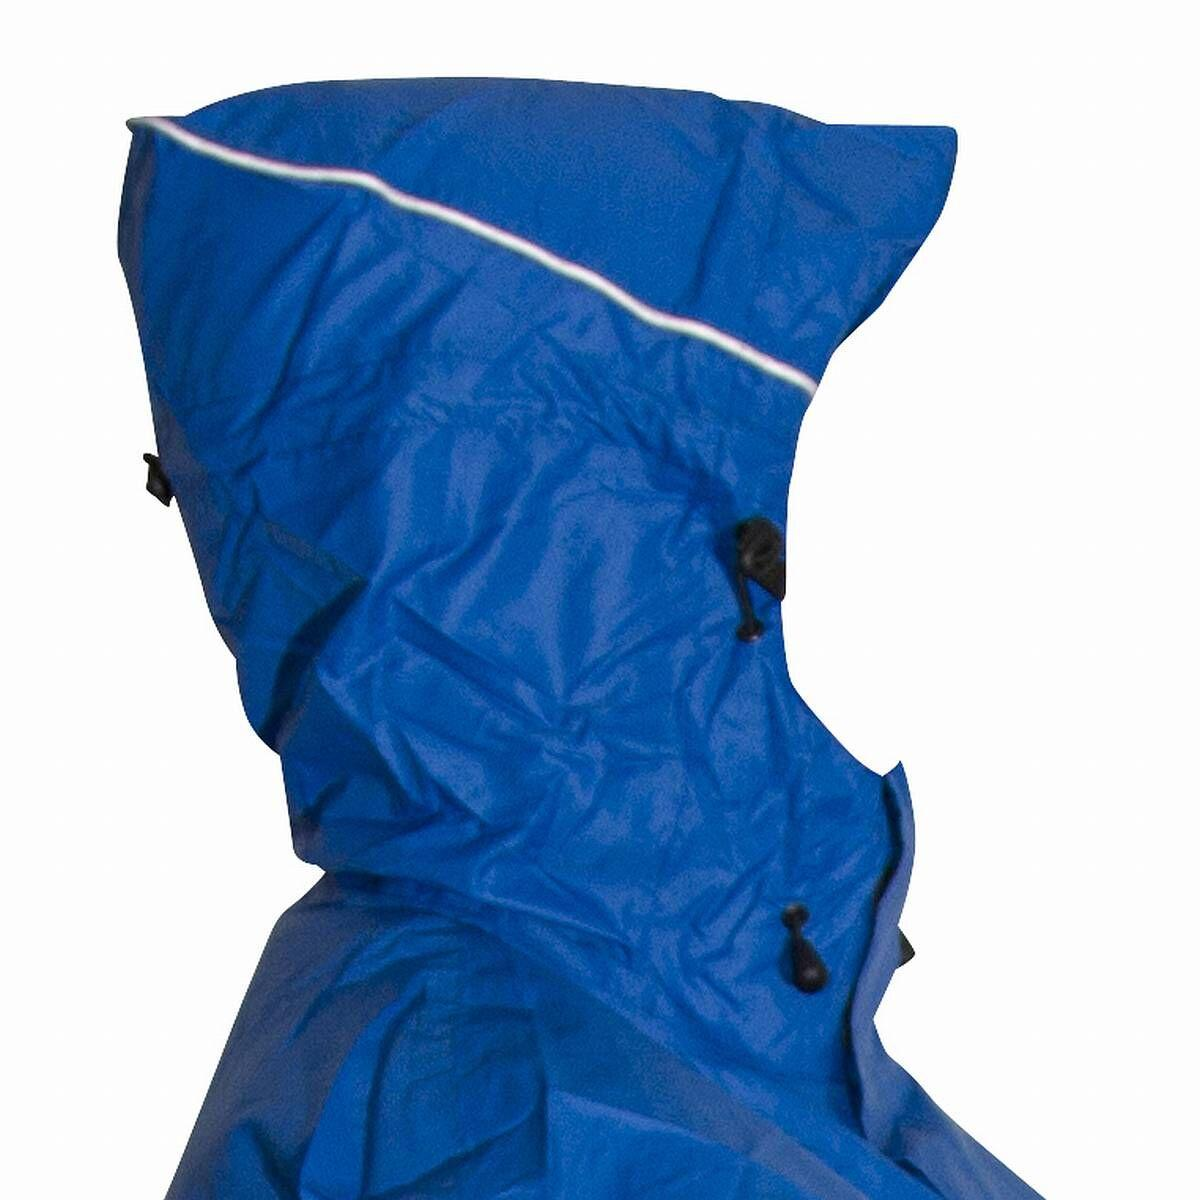 Mac in a Sac Rugzakponcho unisex Blauw  / Backpackponcho blue